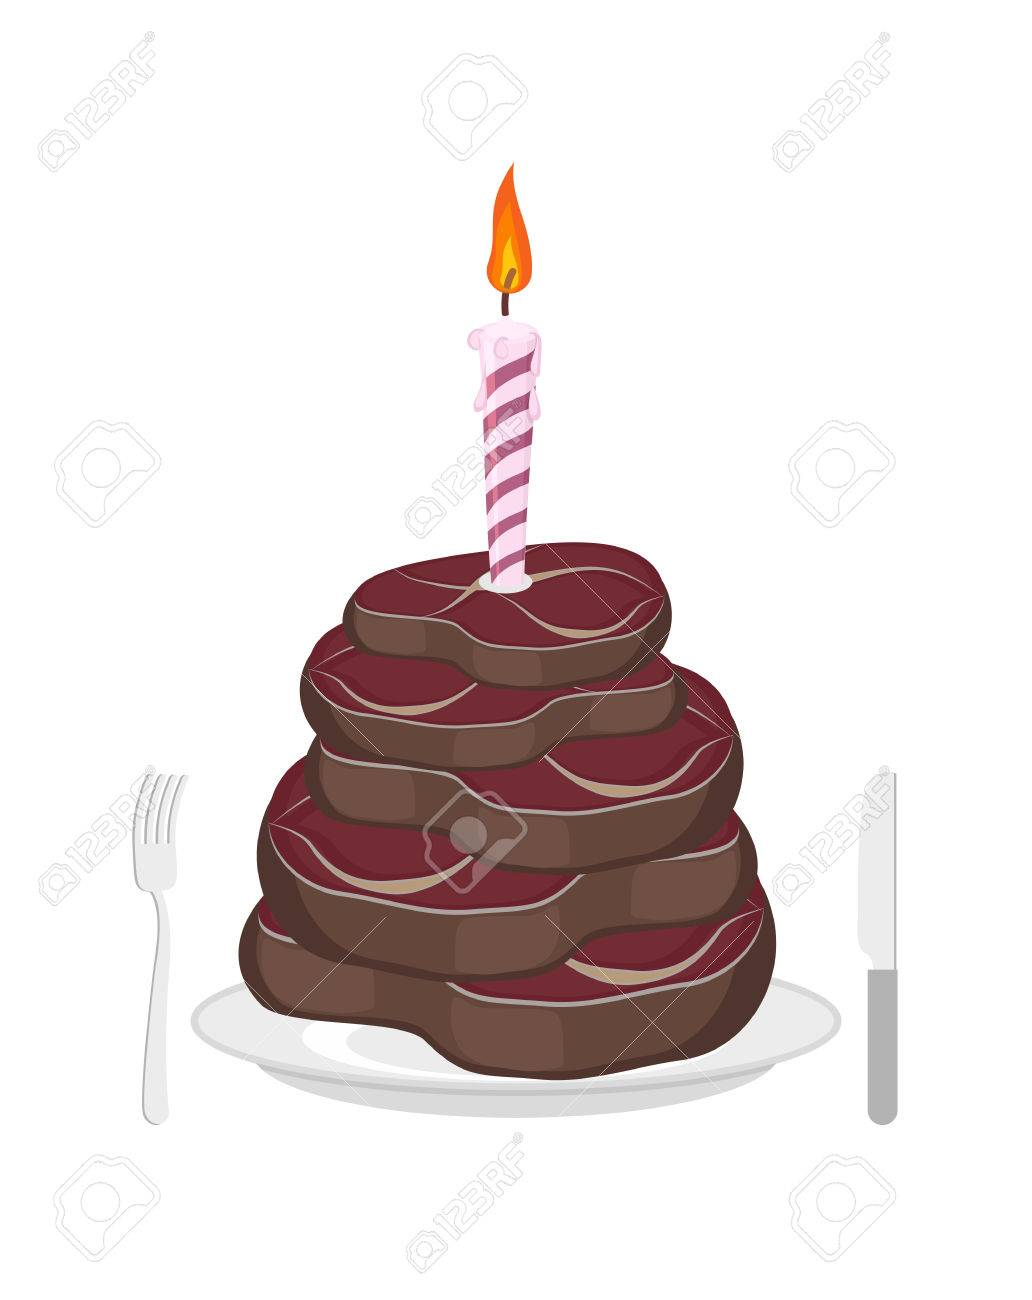 Magnificent Meat Cake Steak And Candle Congratulations Happy Birthday Men Funny Birthday Cards Online Inifofree Goldxyz